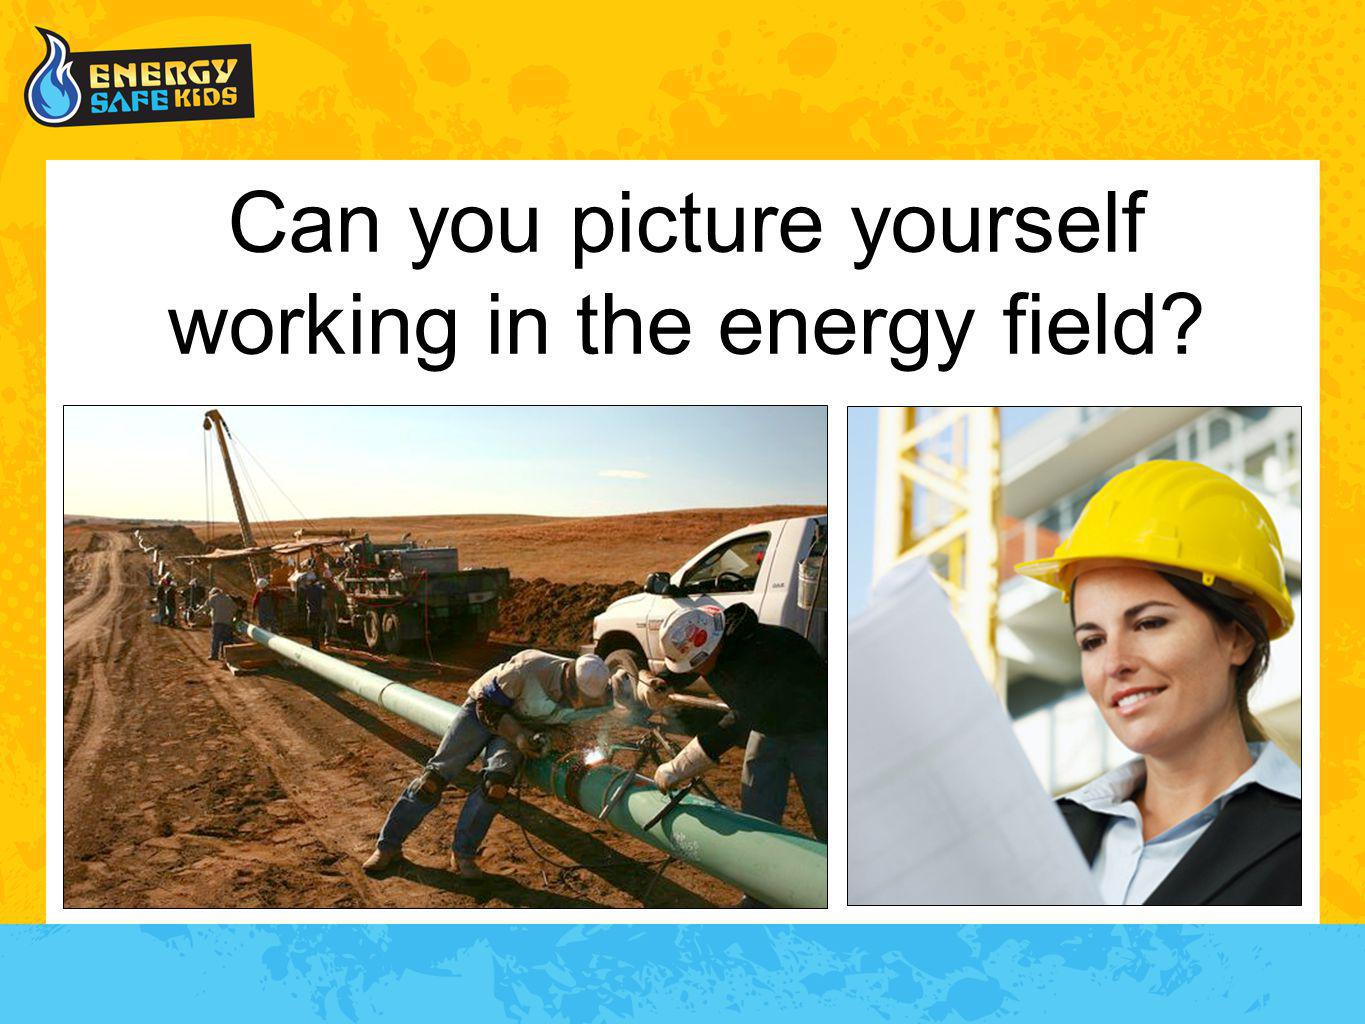 Can you picture yourself working in the energy field?